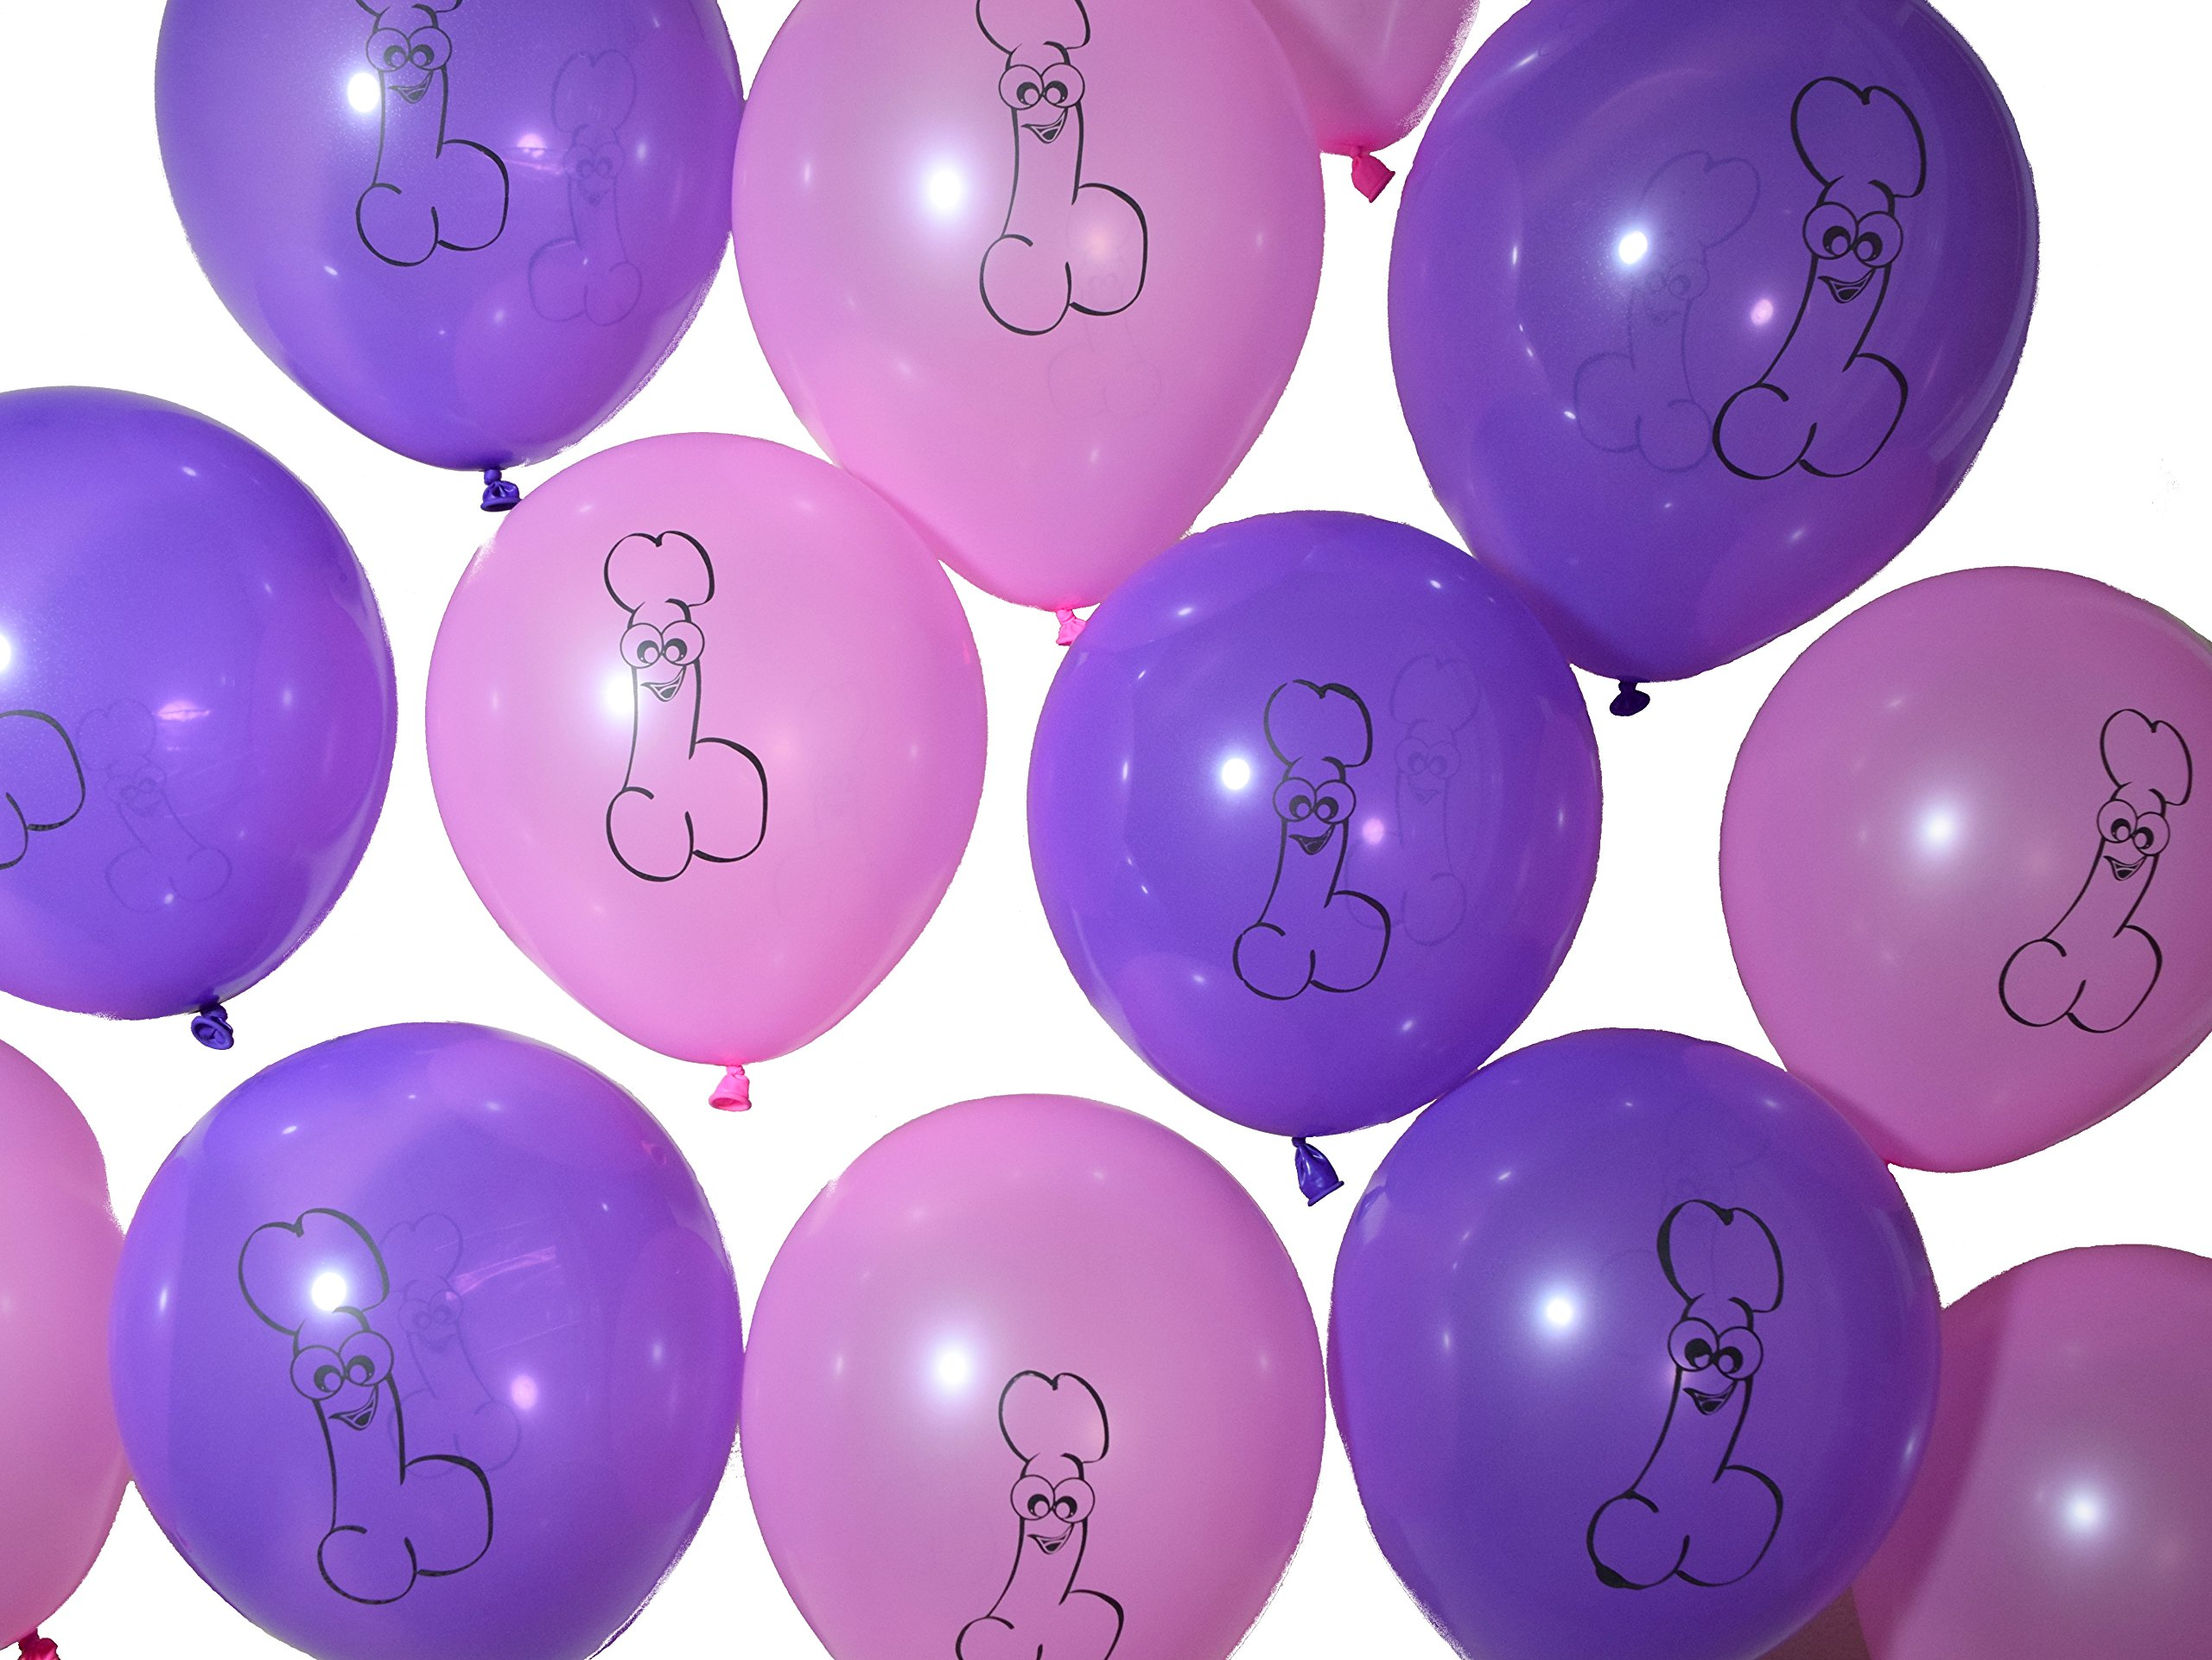 Peckerations Awesome Airheads Pink and Purple Party Balloons 20 Pack